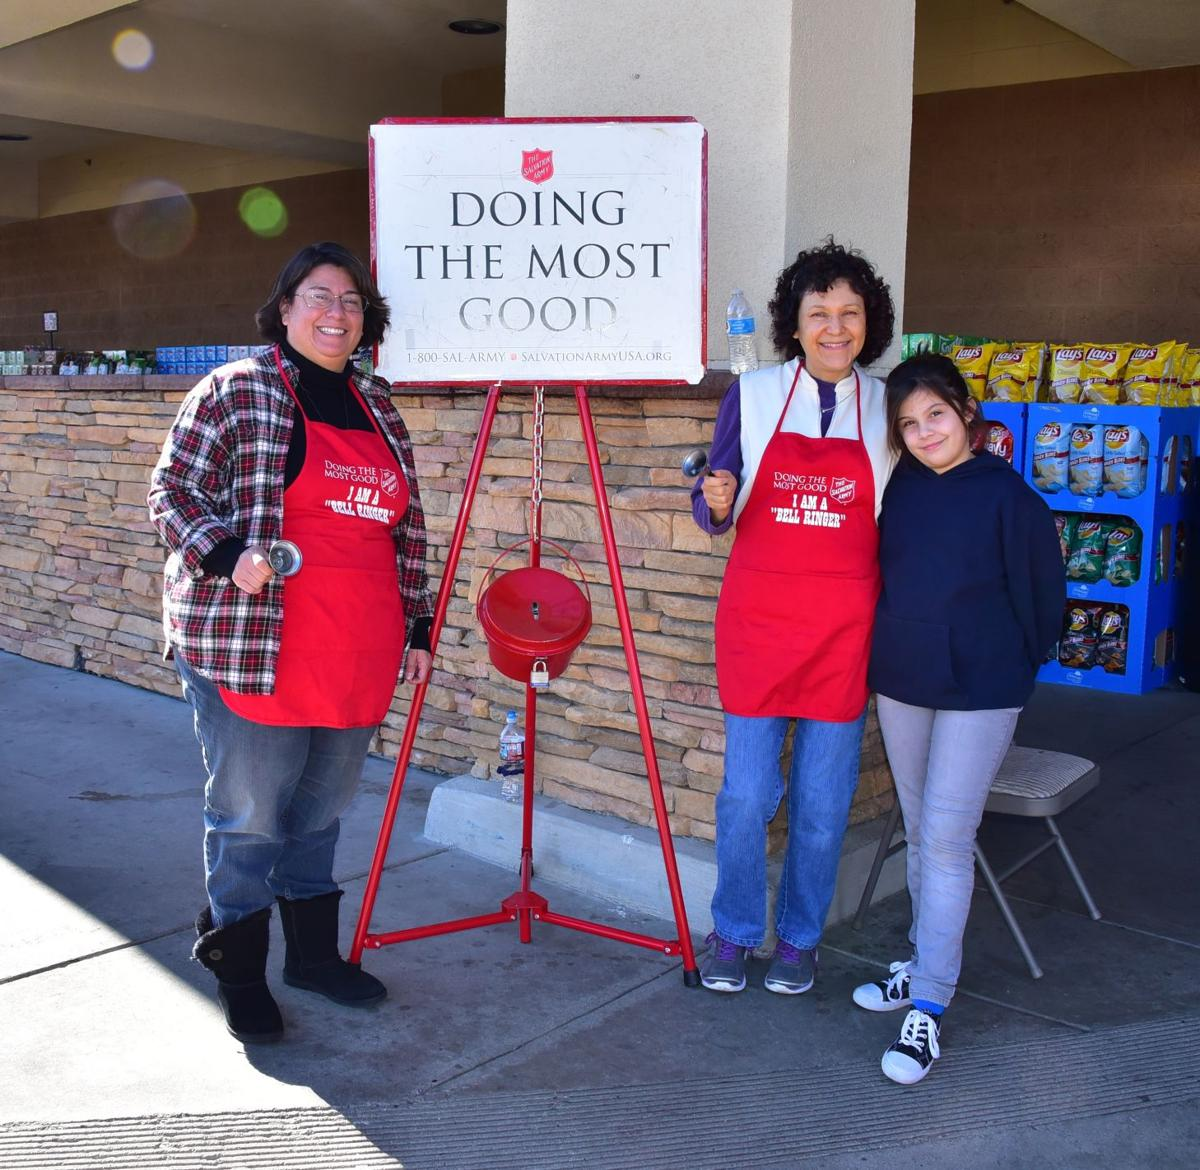 Photos: Bell ringing season begins for Salvation Army | News